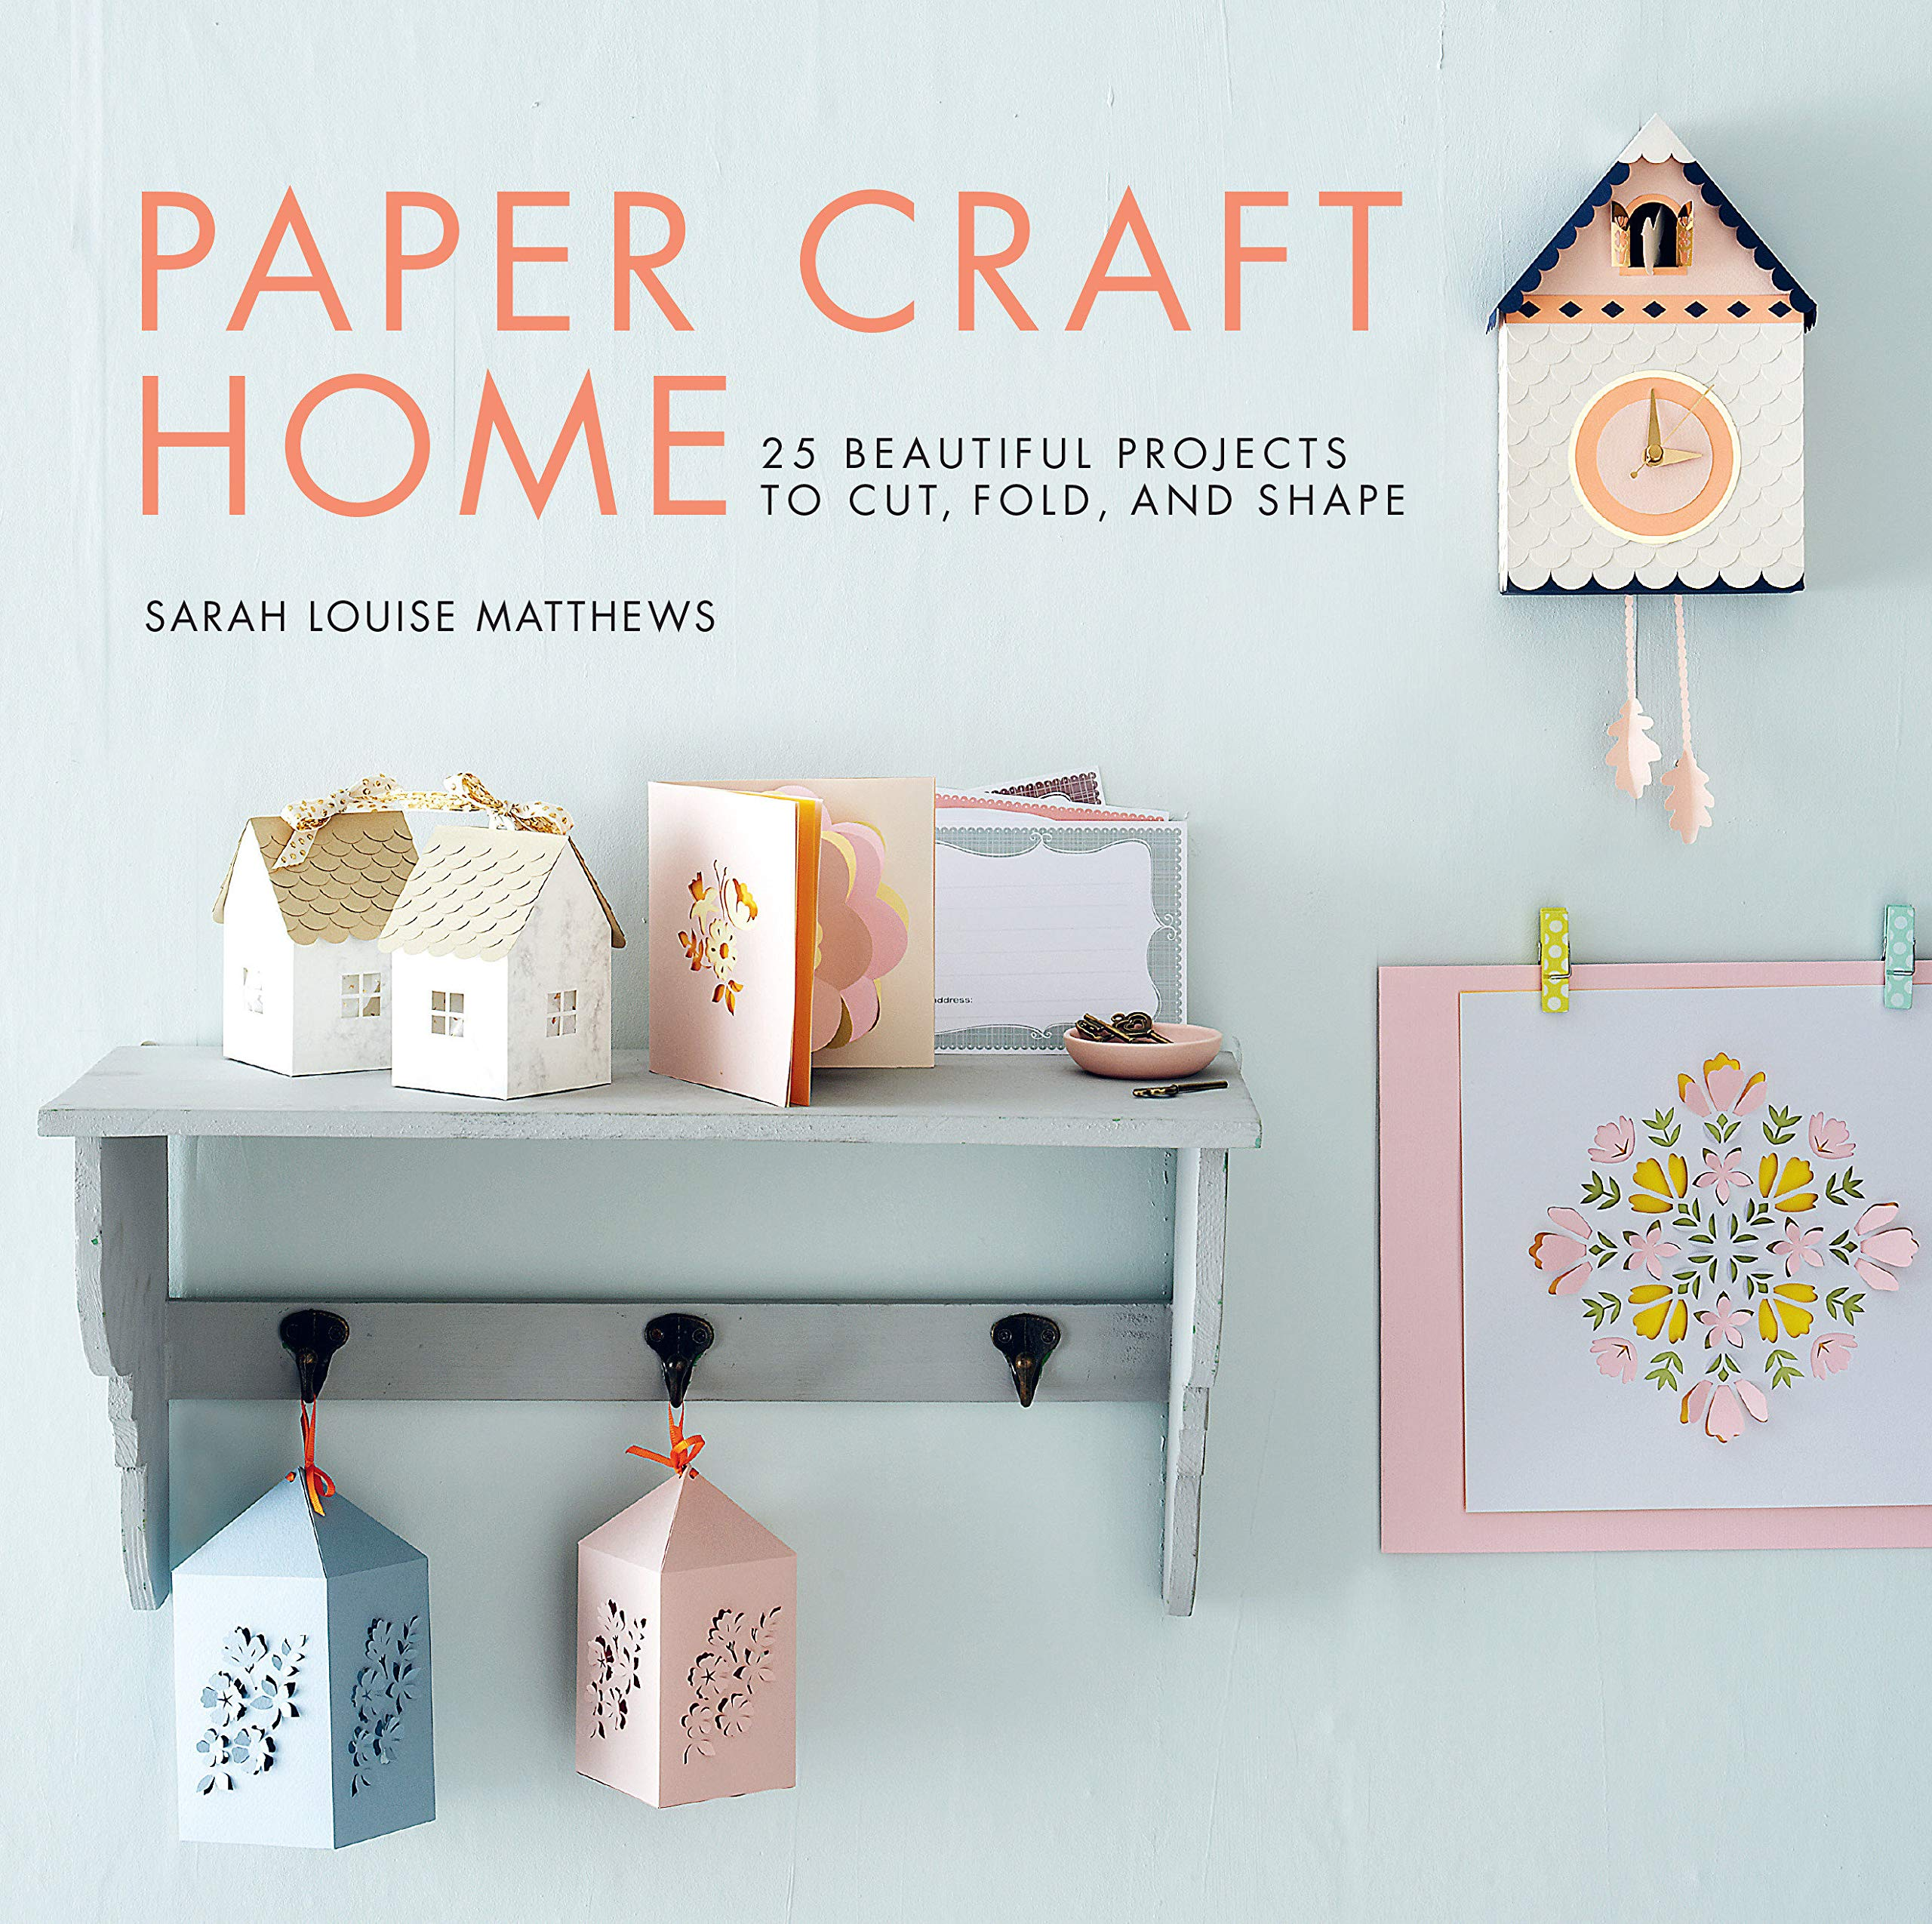 Paper Craft Home: 25 Beautiful Projects to Cut, Fold, and Shape by Sarah Louise Matthews